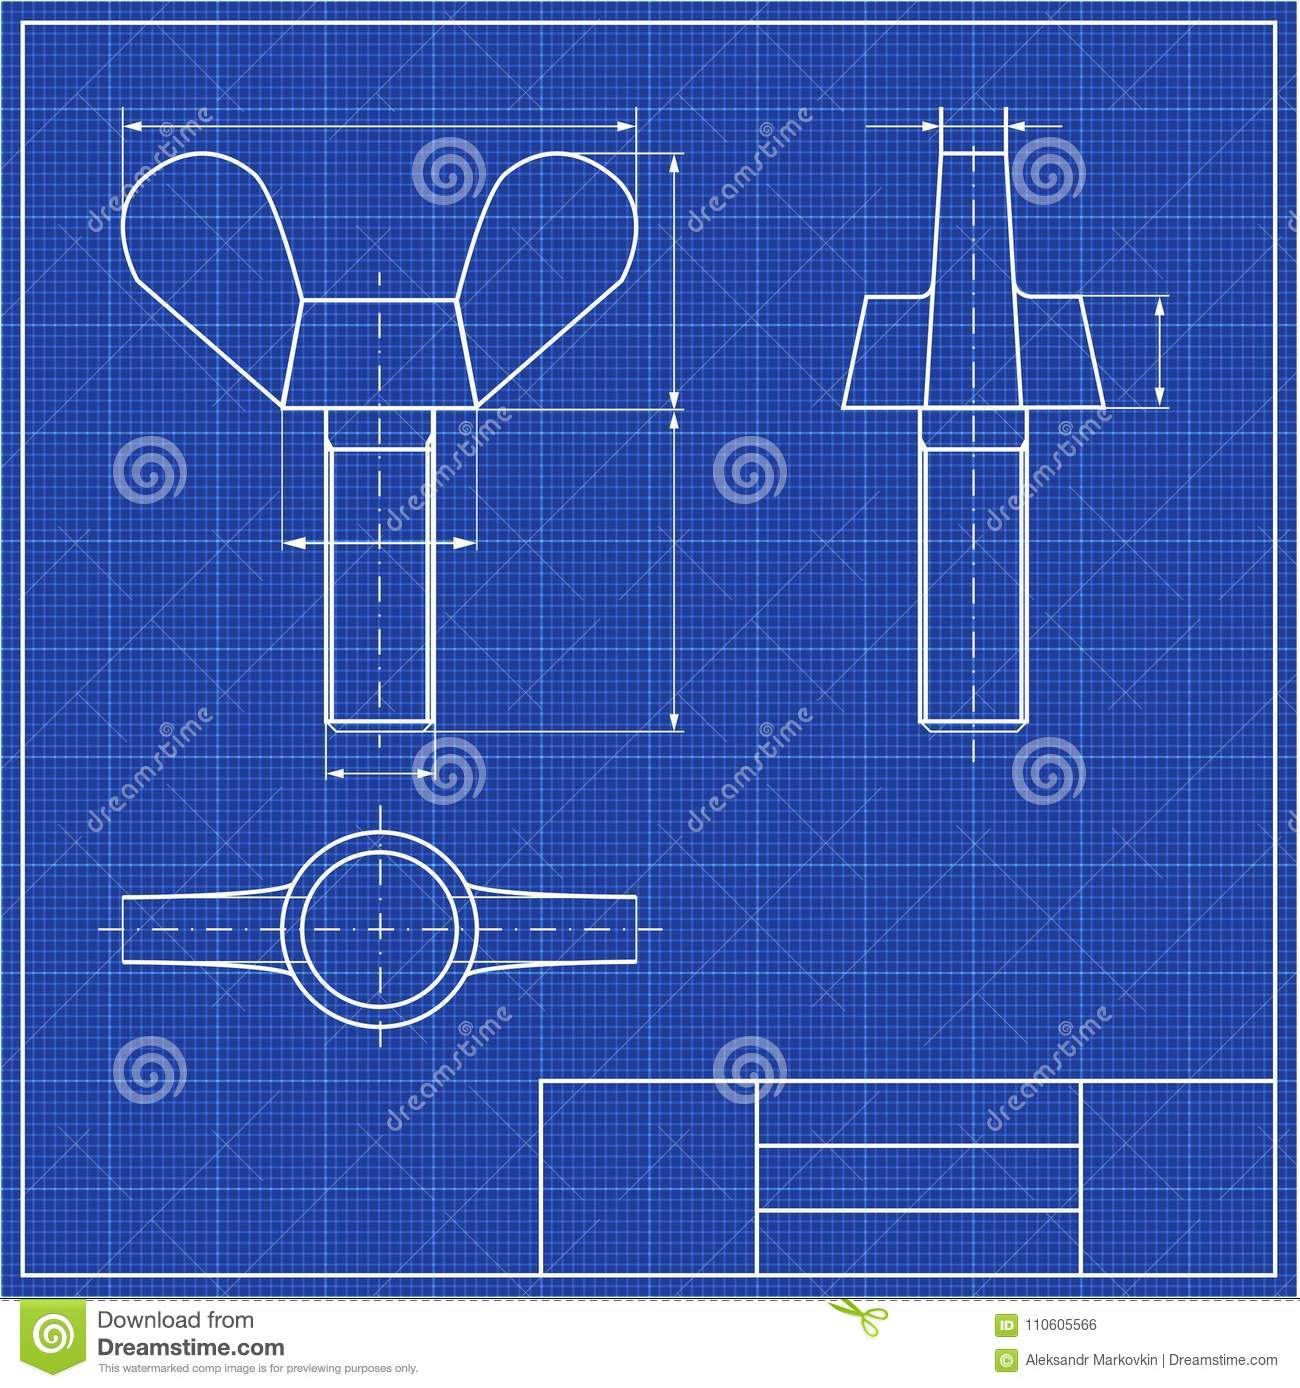 Blueprints Mechanical Engineering Drawings Of Stock Vector